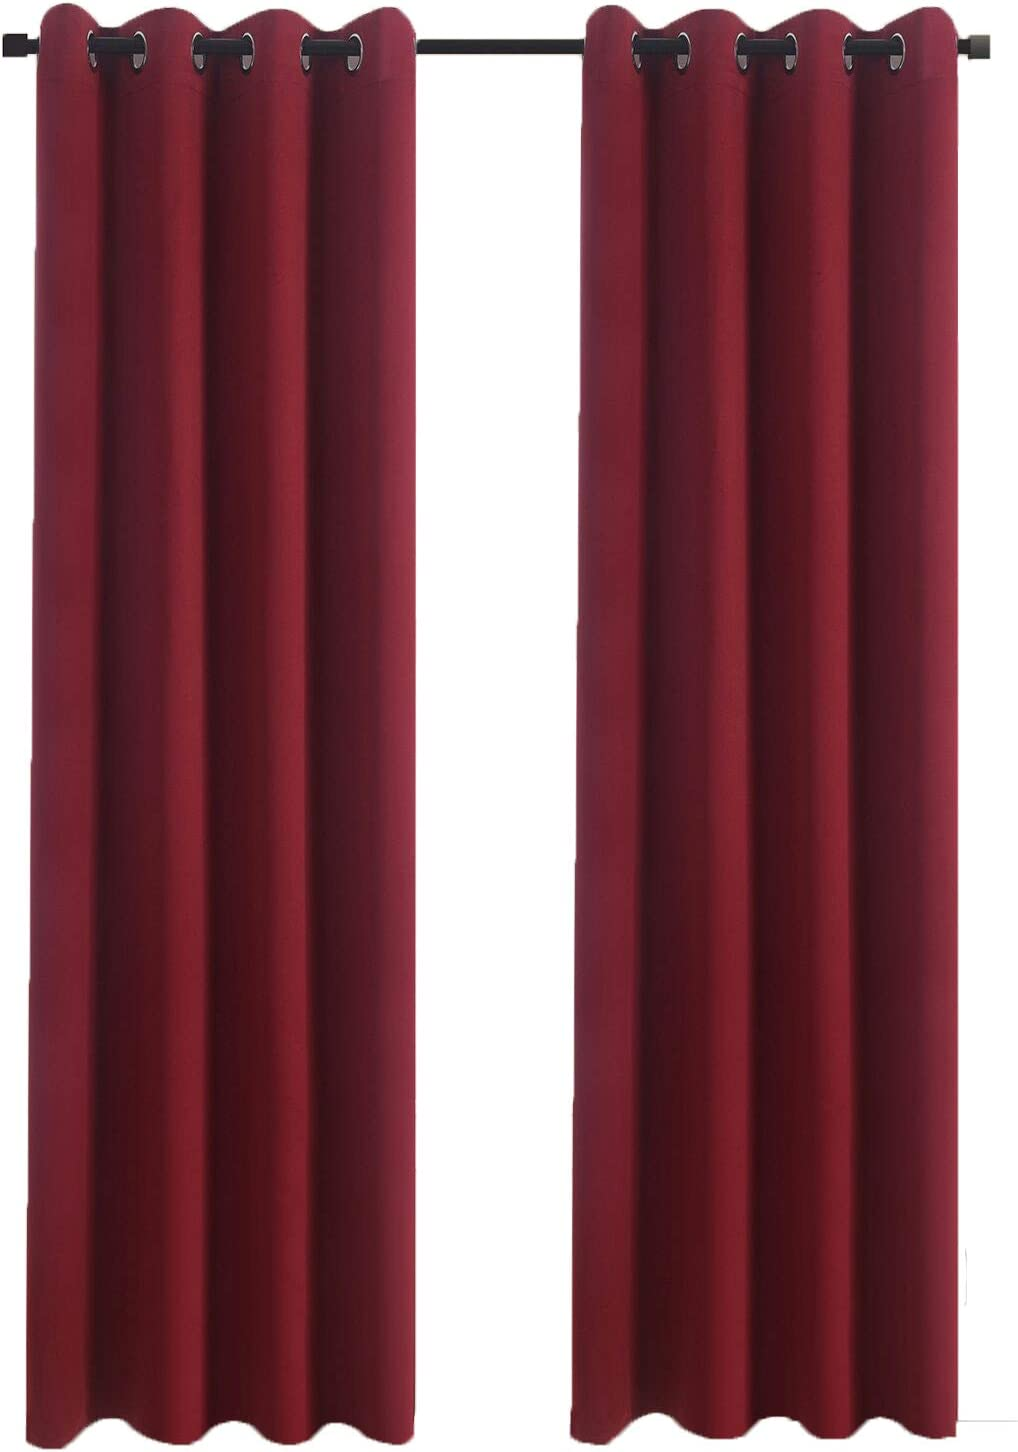 Aquazolax Burgundy Blackout Draperies Curtains for Kitchen Elegant Grommet Thermal Insulated Window Curtains Blackout Drapes, 1 Pair, 54 x 72 Inch, Burgundy Red